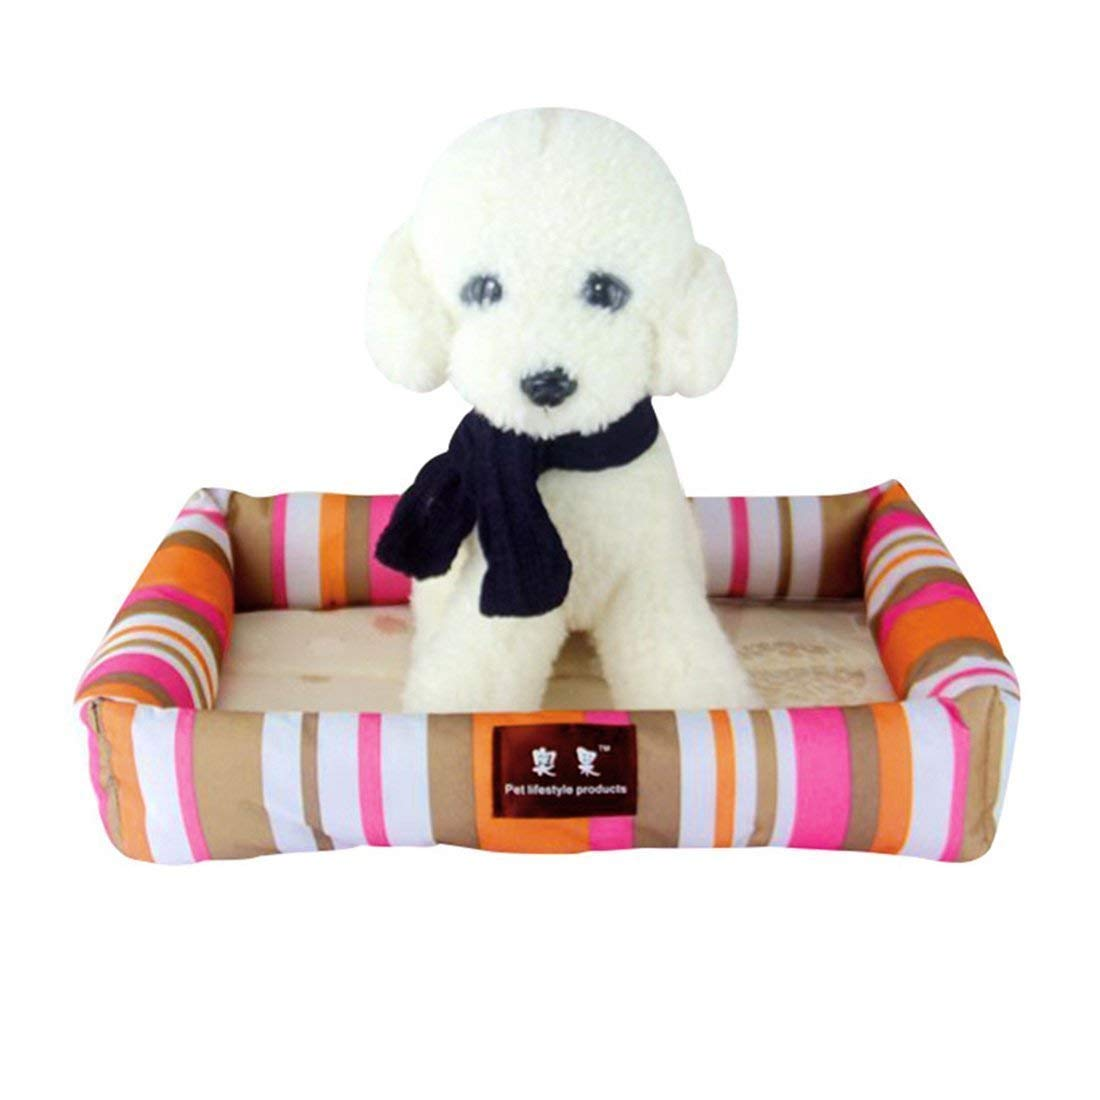 IANXI Home Summer Dog Bed Pet Cooling Sleeping Mat Cat Bed Cushion pink and orange L for Cat Dog